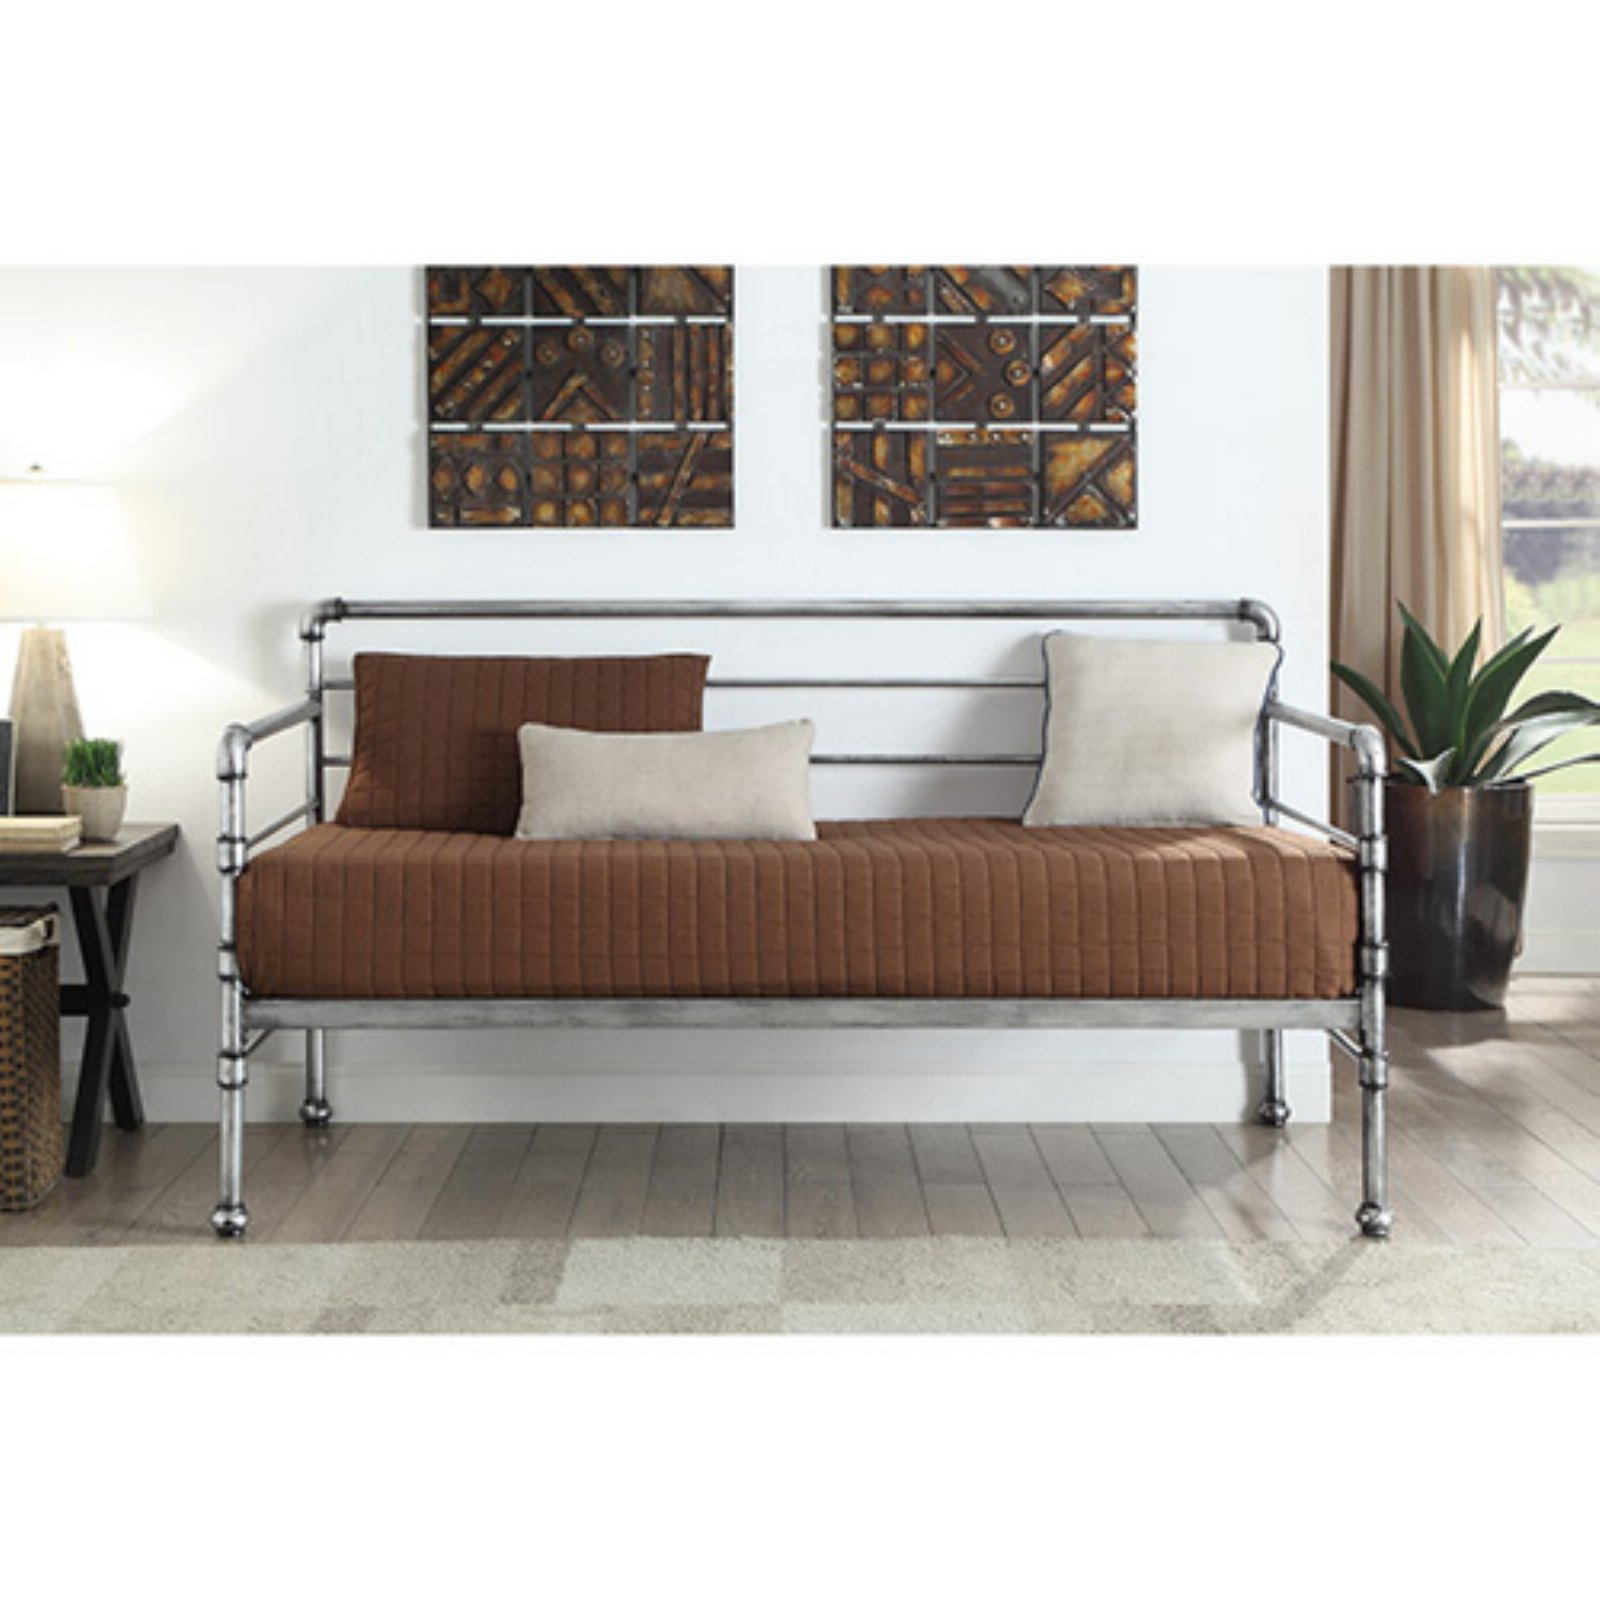 K&B Furniture Metal Daybed with Optional Trundle